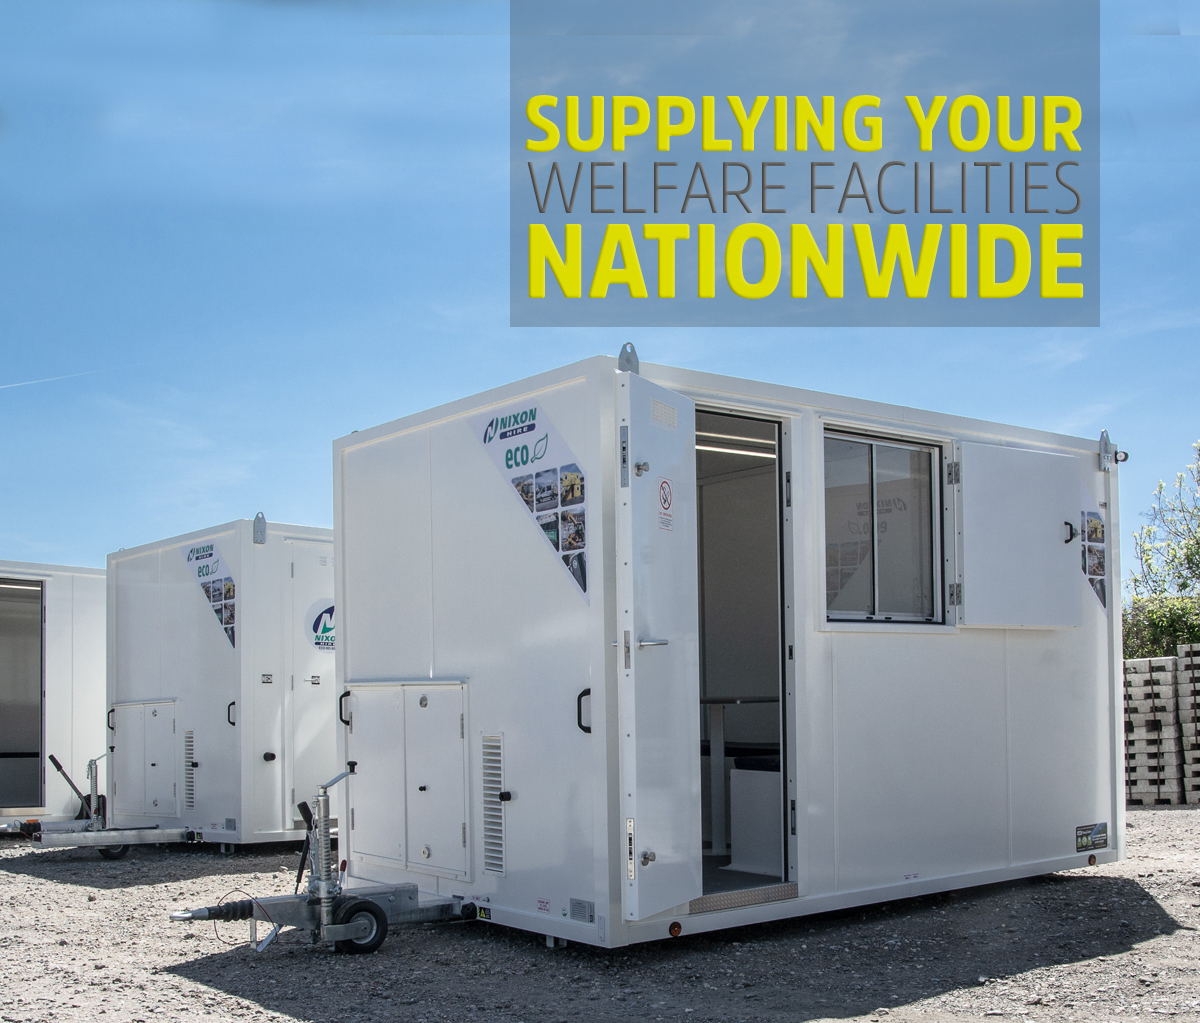 Row Of White 20 Foot Mobile Welfare Cabins On Site